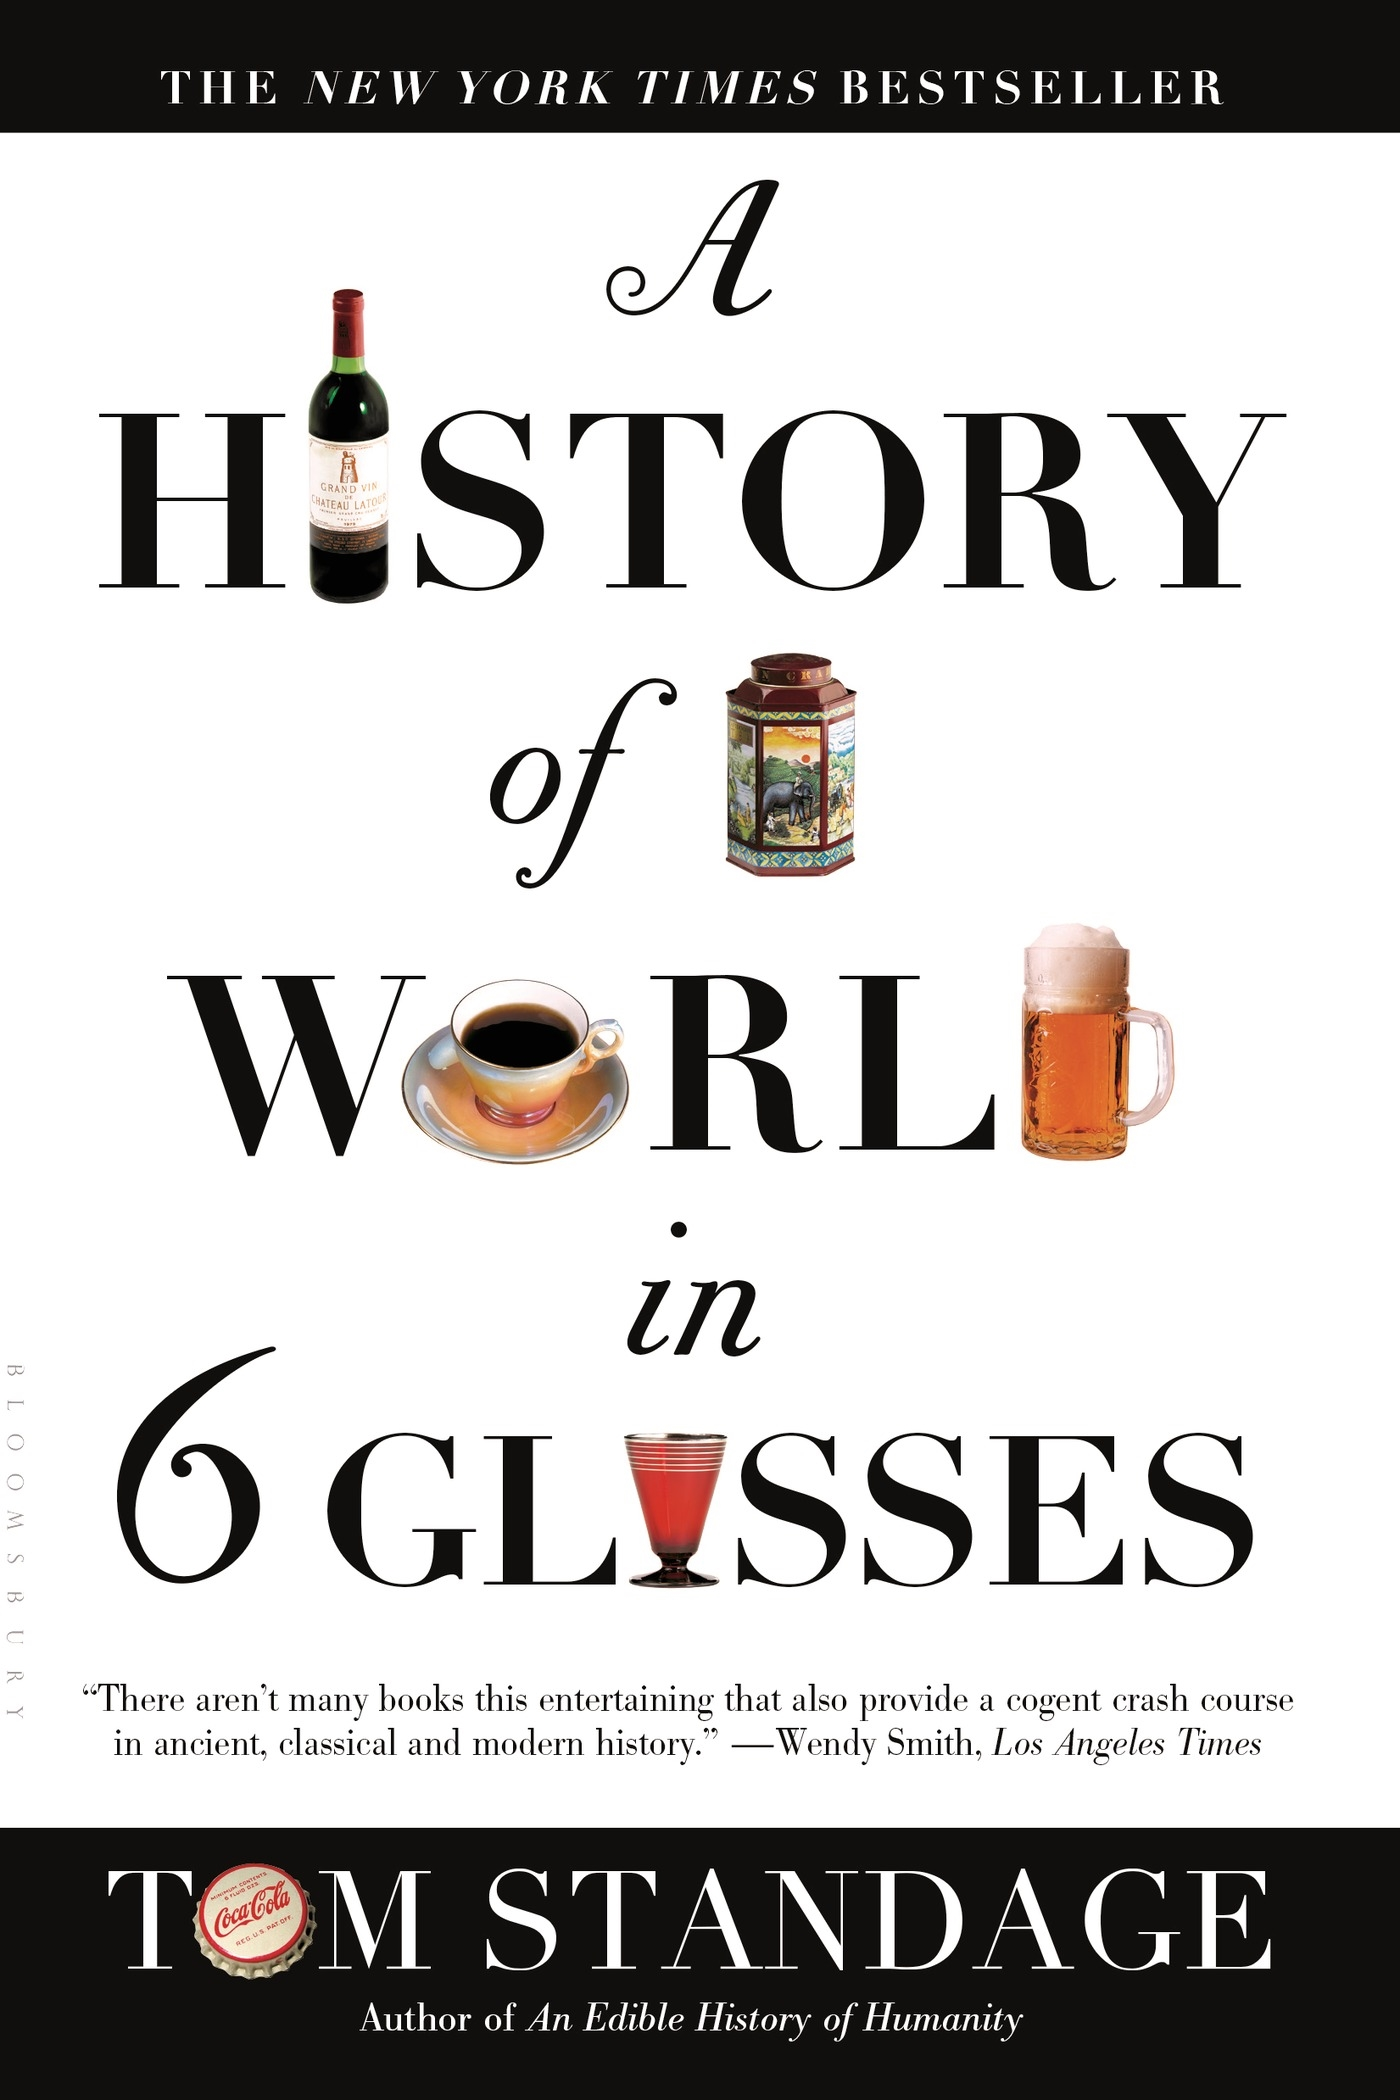 a history of the world in 6 glasses epub